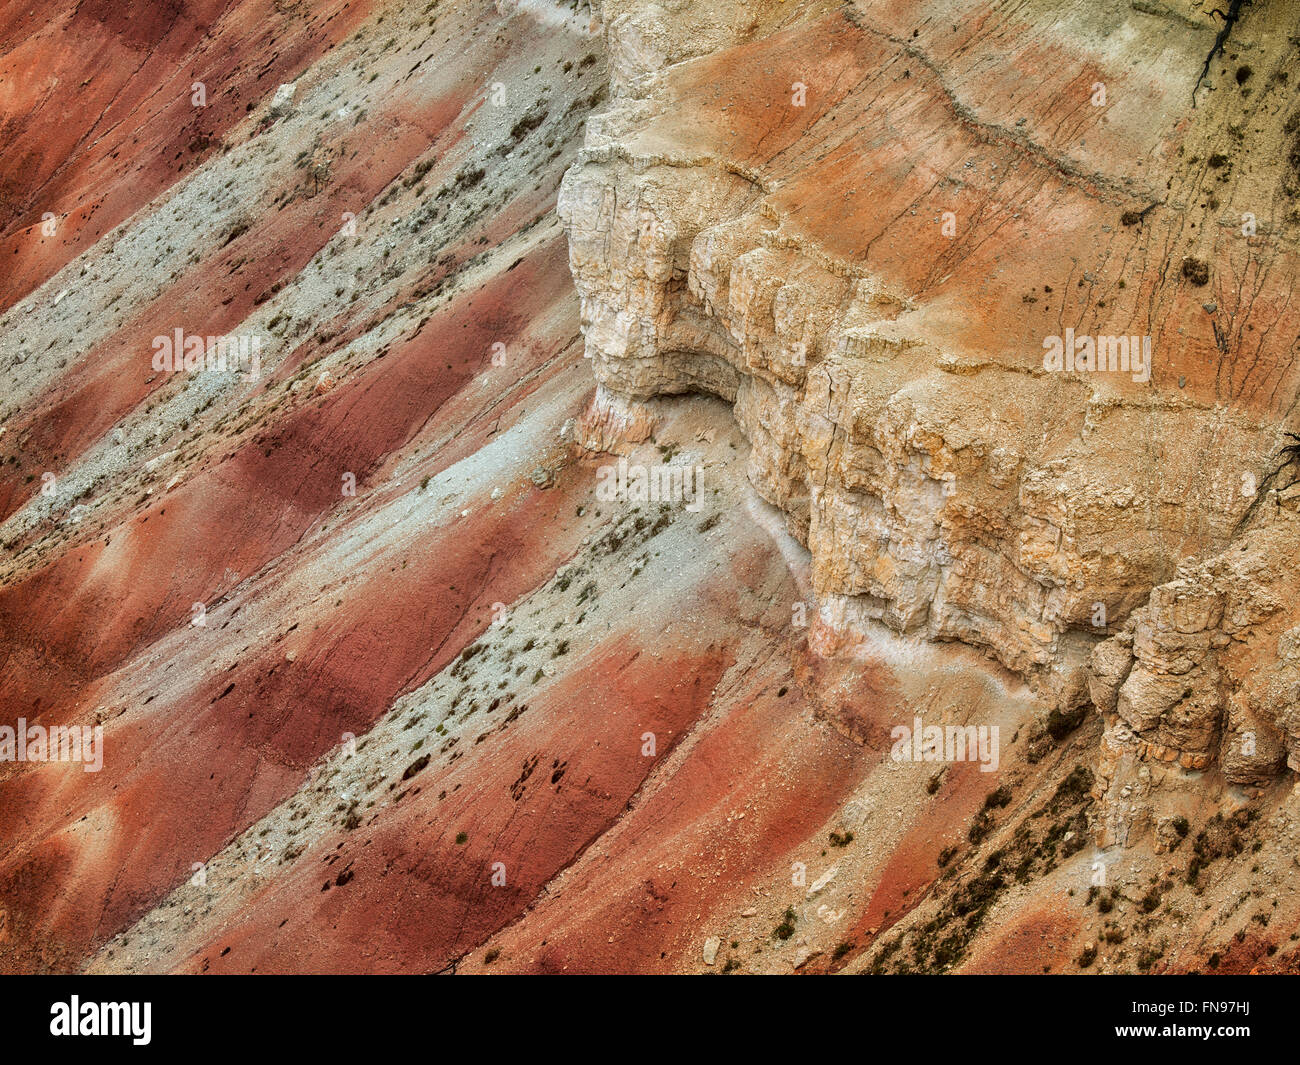 Canyon lands in Cedar Breaks National monument, Utah Stock Photo